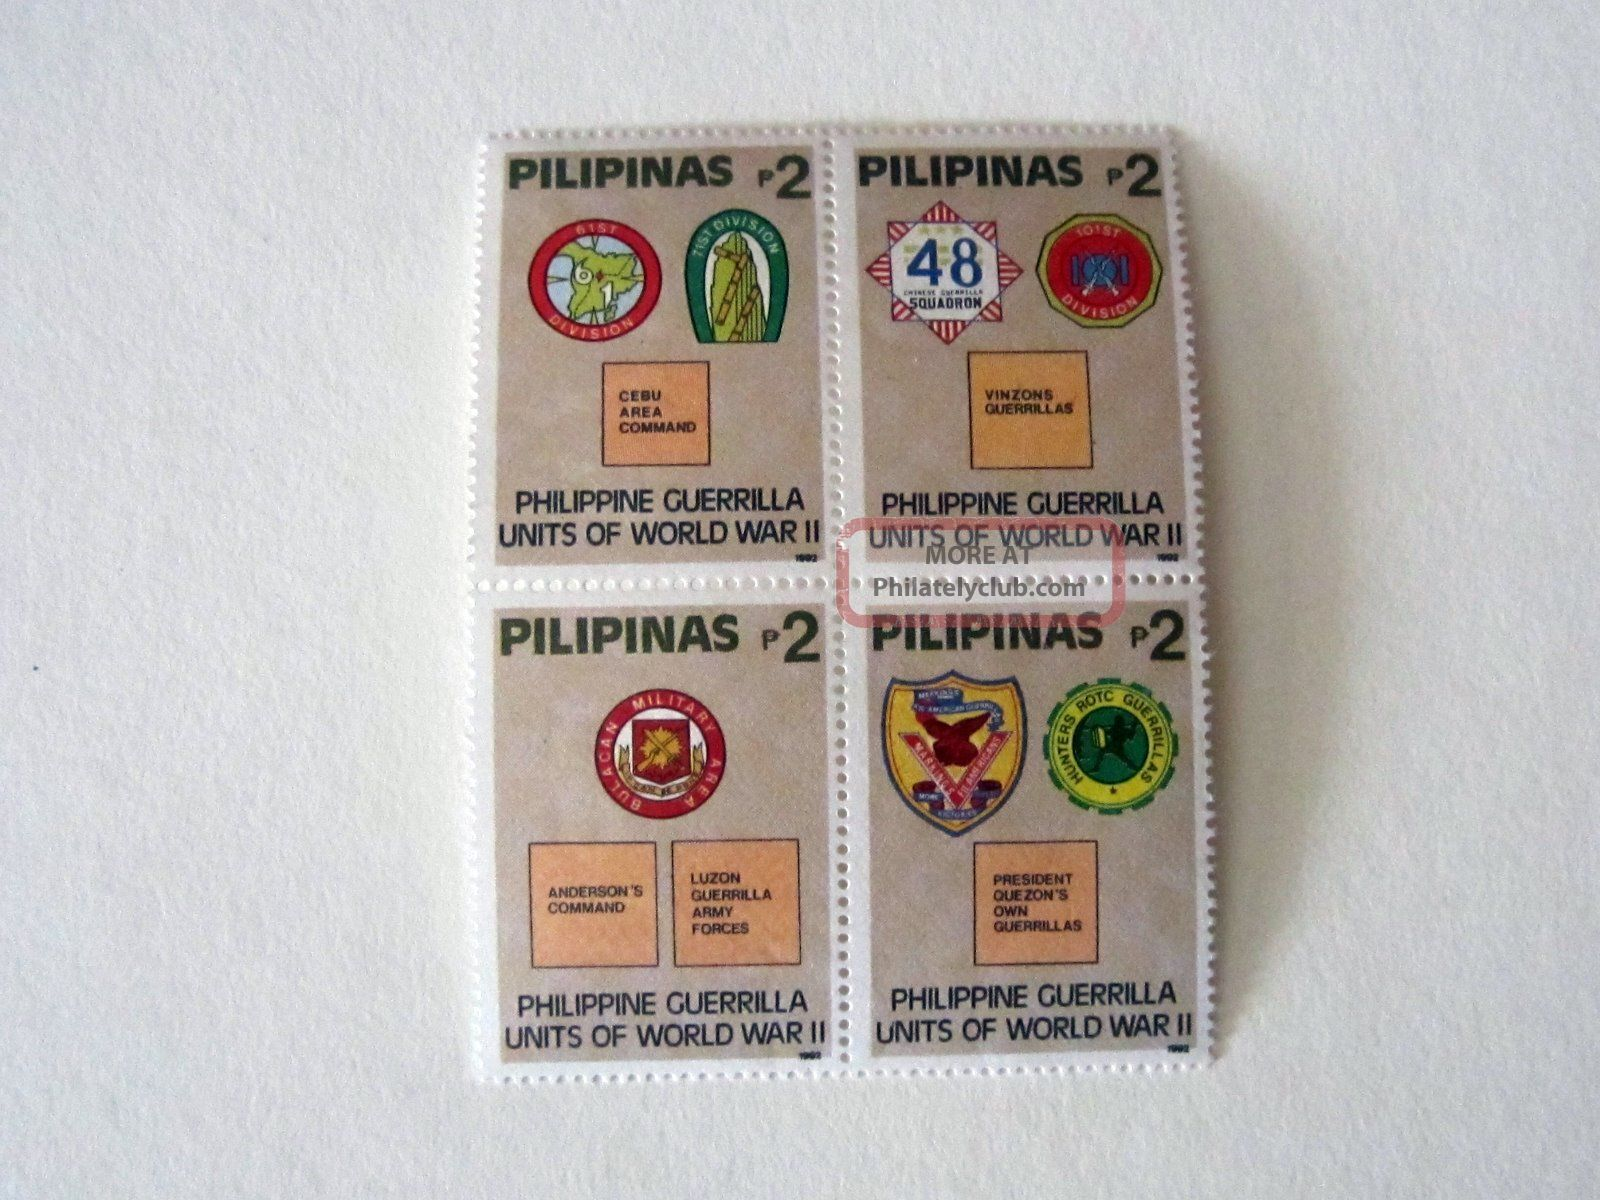 Philippines Pilipinas Guerrilla Units Of Wwii 1992 Stamp Asia photo